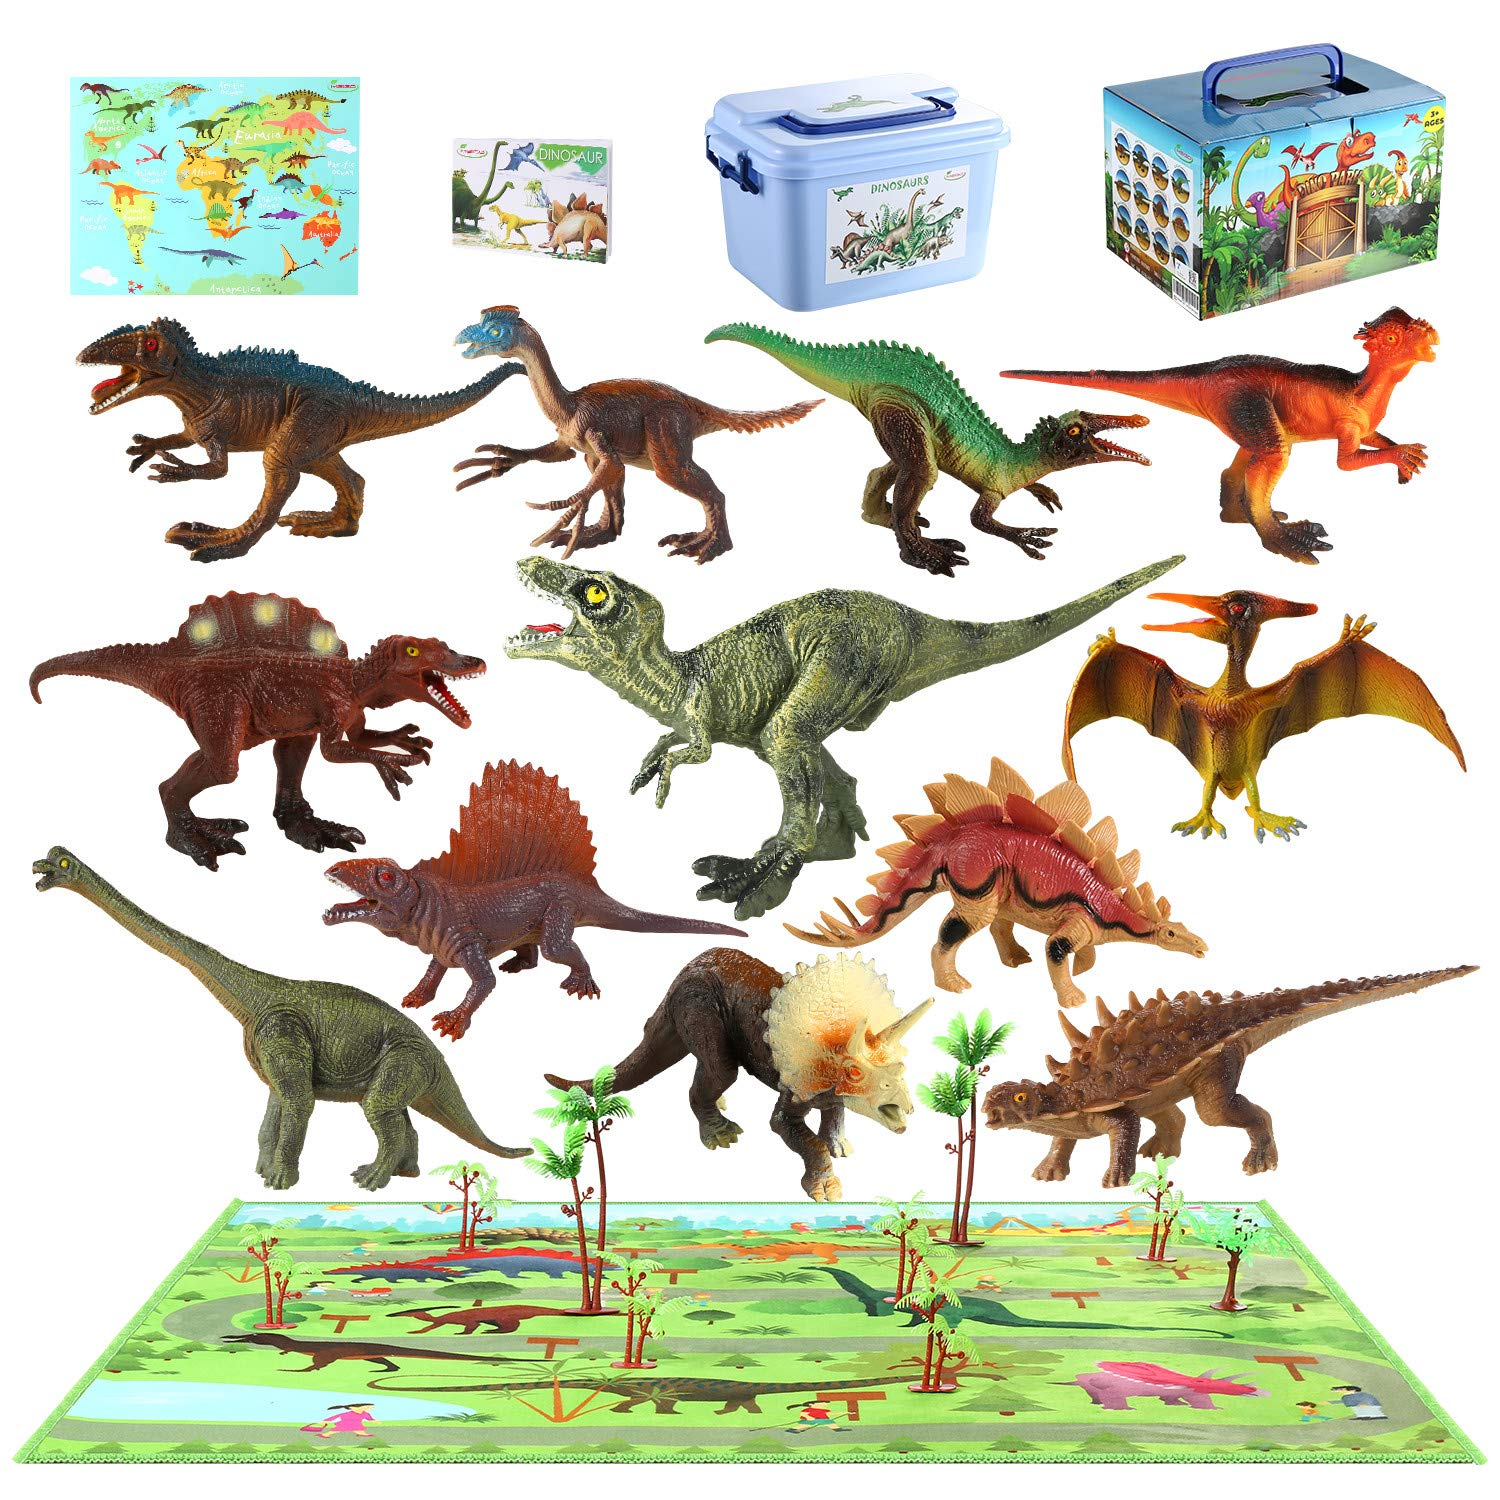 Birthday Present,Dinosaur Party Toy Sdgebd 7 to 10 Educational Dinosaur Toys,Realistic Educational Toy Jurassic Dinosaur Figures for Kids,Great Gift Set and Toddler Dinosaur Gift! 6 Pieces